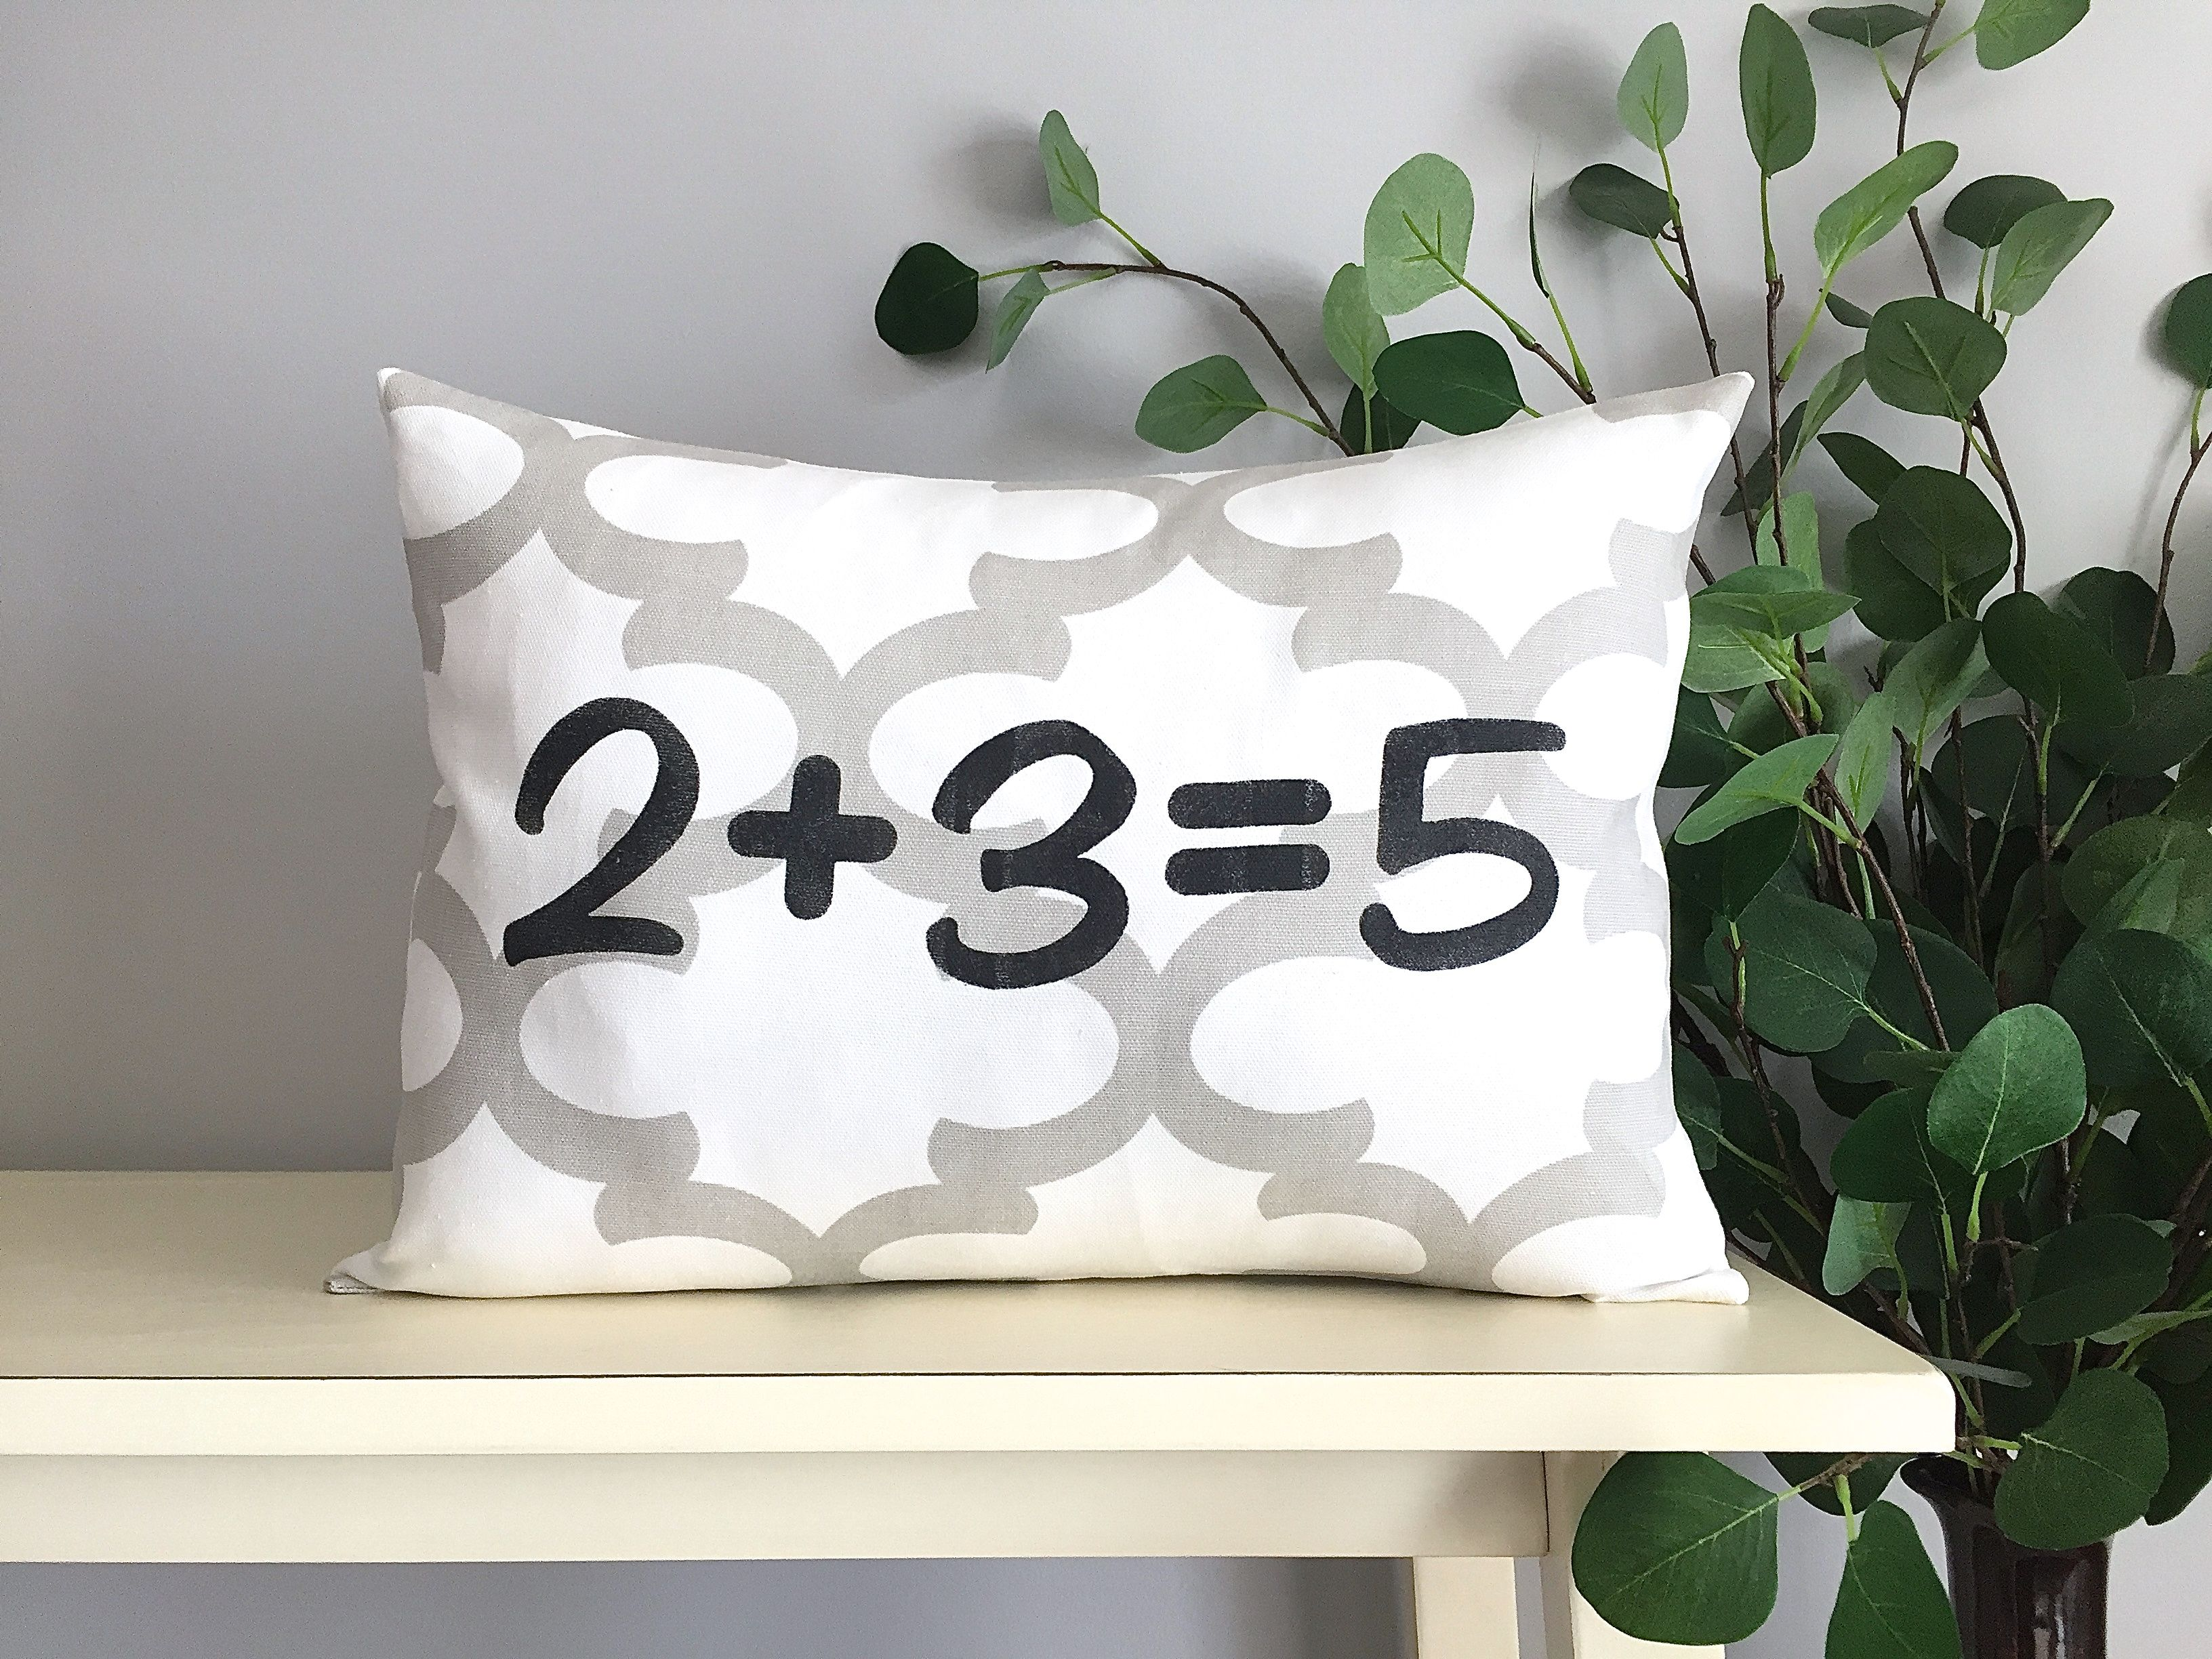 wedding pillows personalized for blanket gallery gift gifts cushion couples or pillow